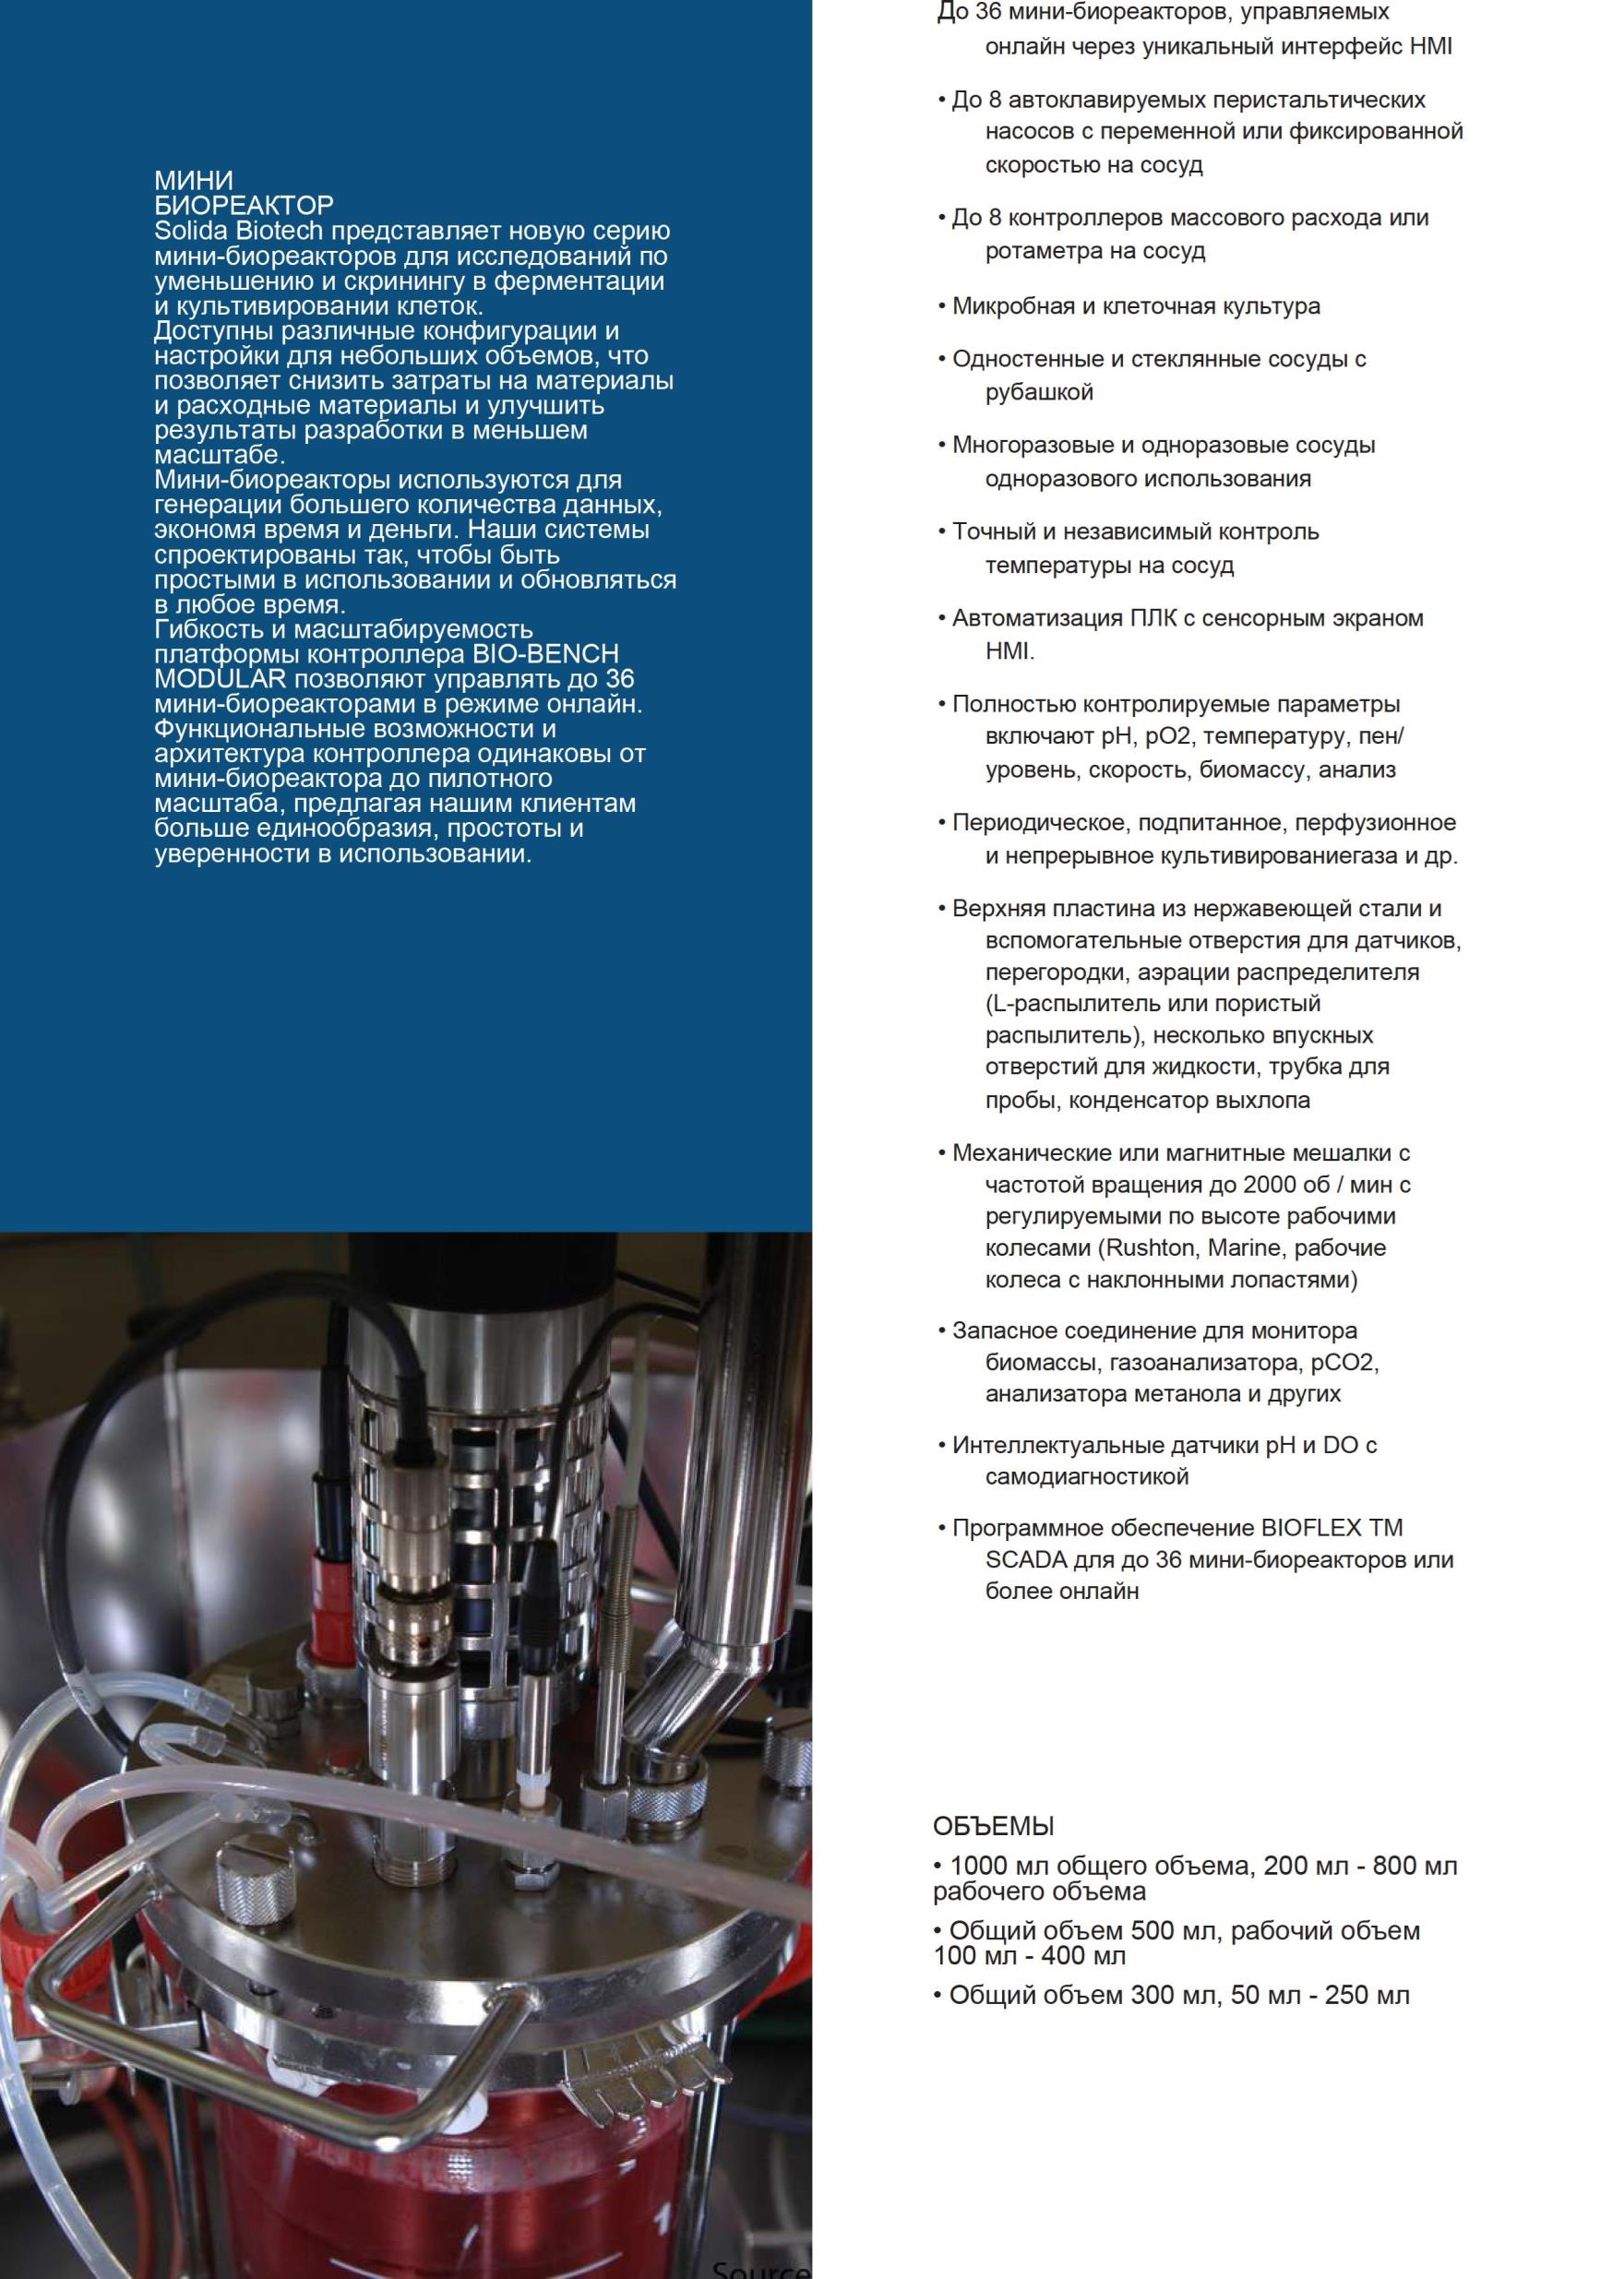 General Catalogue Solida Biotech GmBH2_compressed (2 - 0010